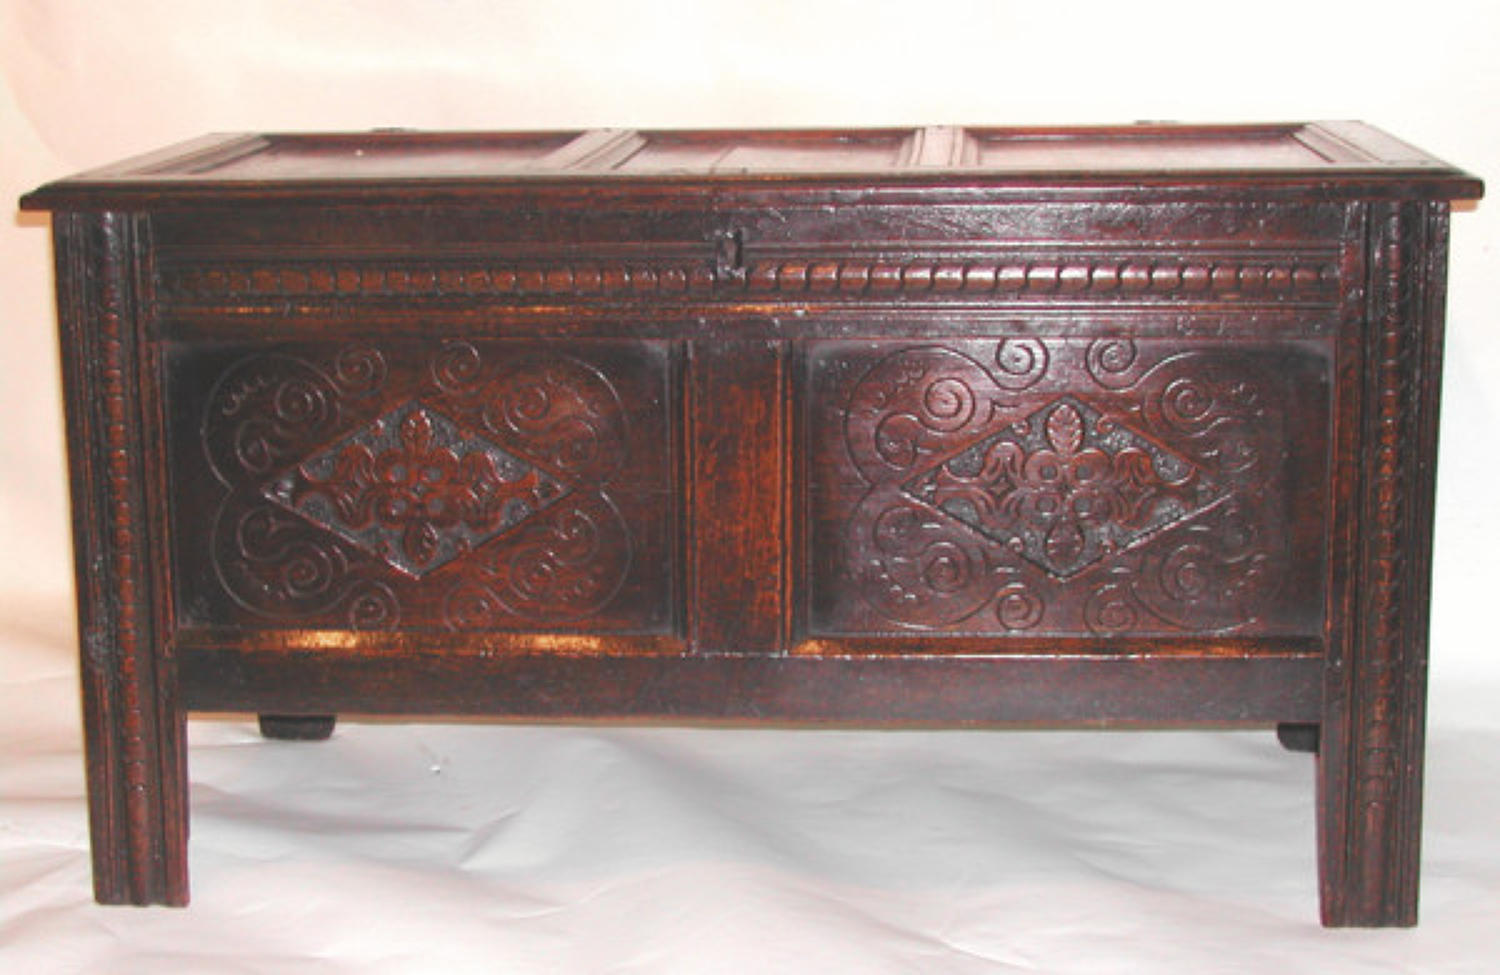 An early 17thc Oak panelled Coffer, English C1660 - 80